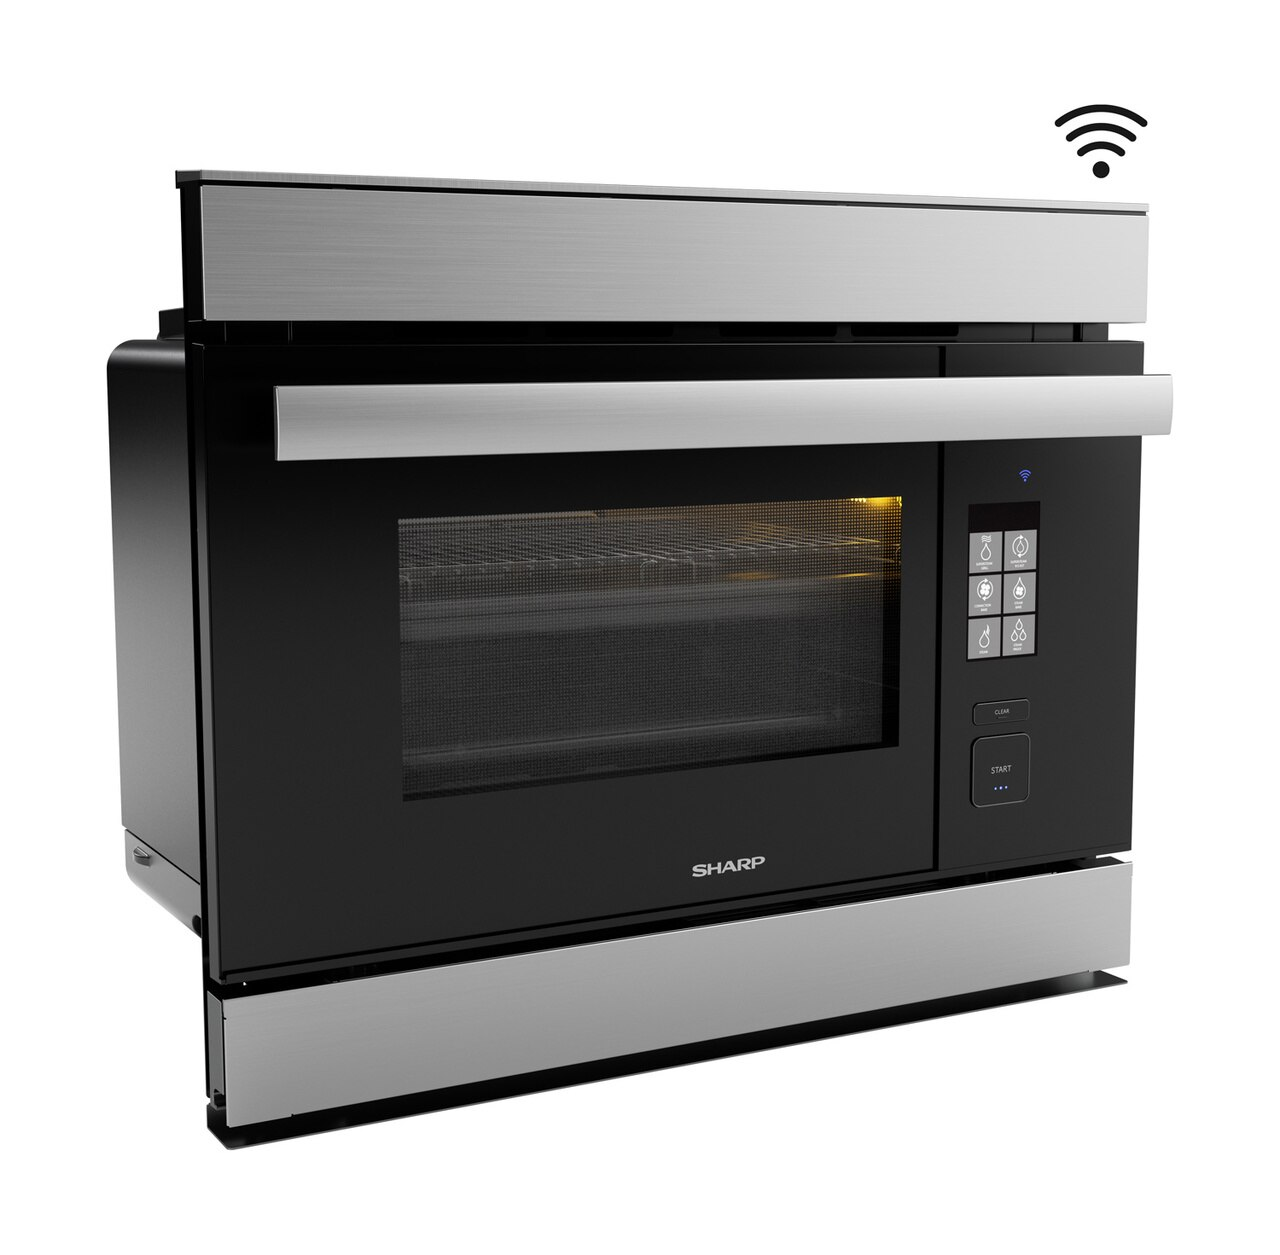 Right side view of the SuperSteam IoT Oven (SSC2489DS) - Sharp's Superheated Steam Oven